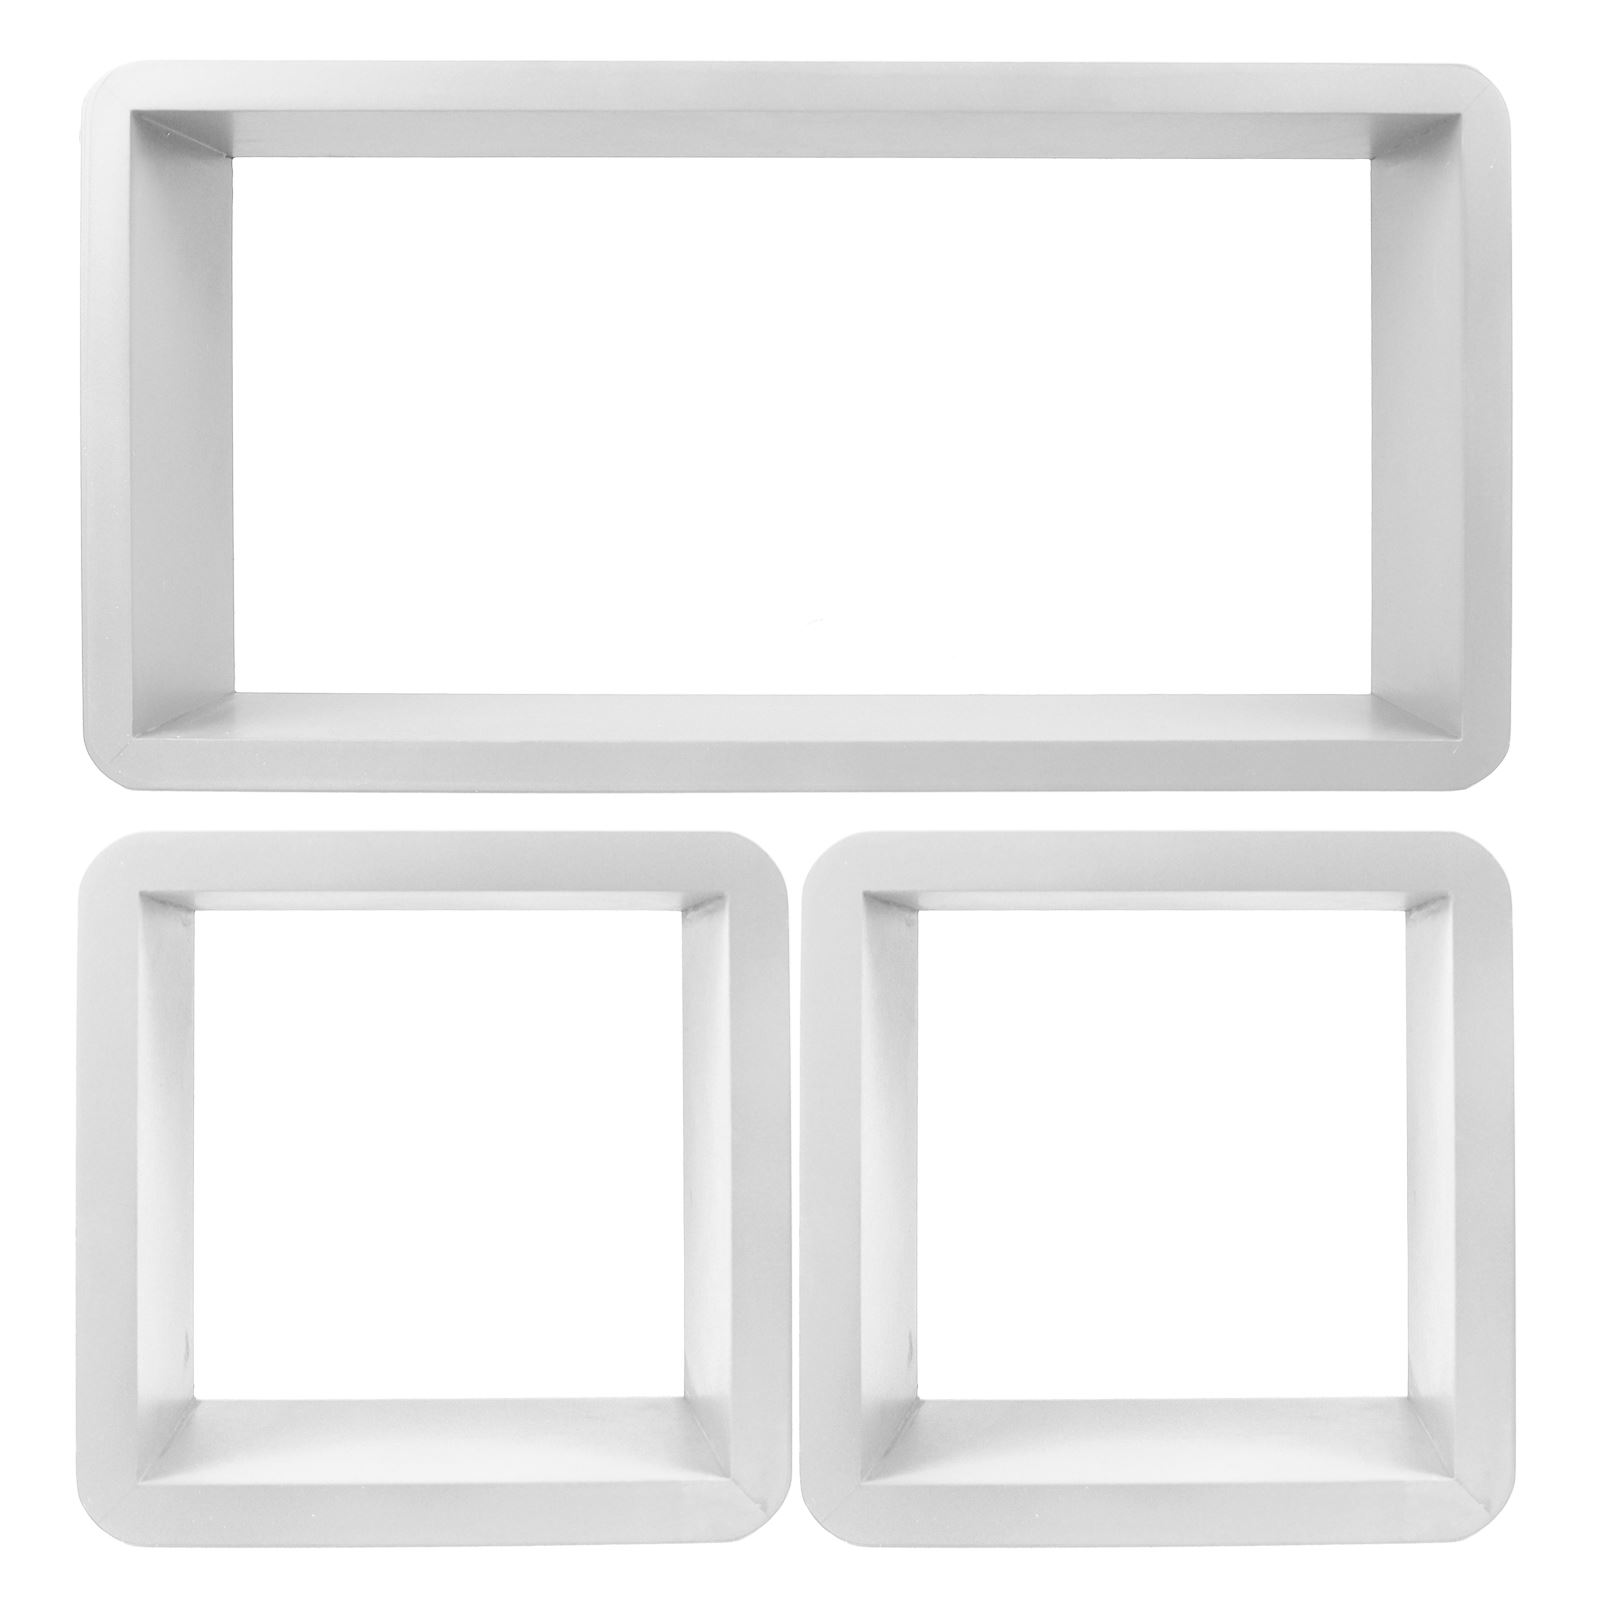 3pc-Set-Rectangle-Floating-Shelves-Wall-Mount-Storage-Book-Shelf-DVD-CD-Stand thumbnail 24